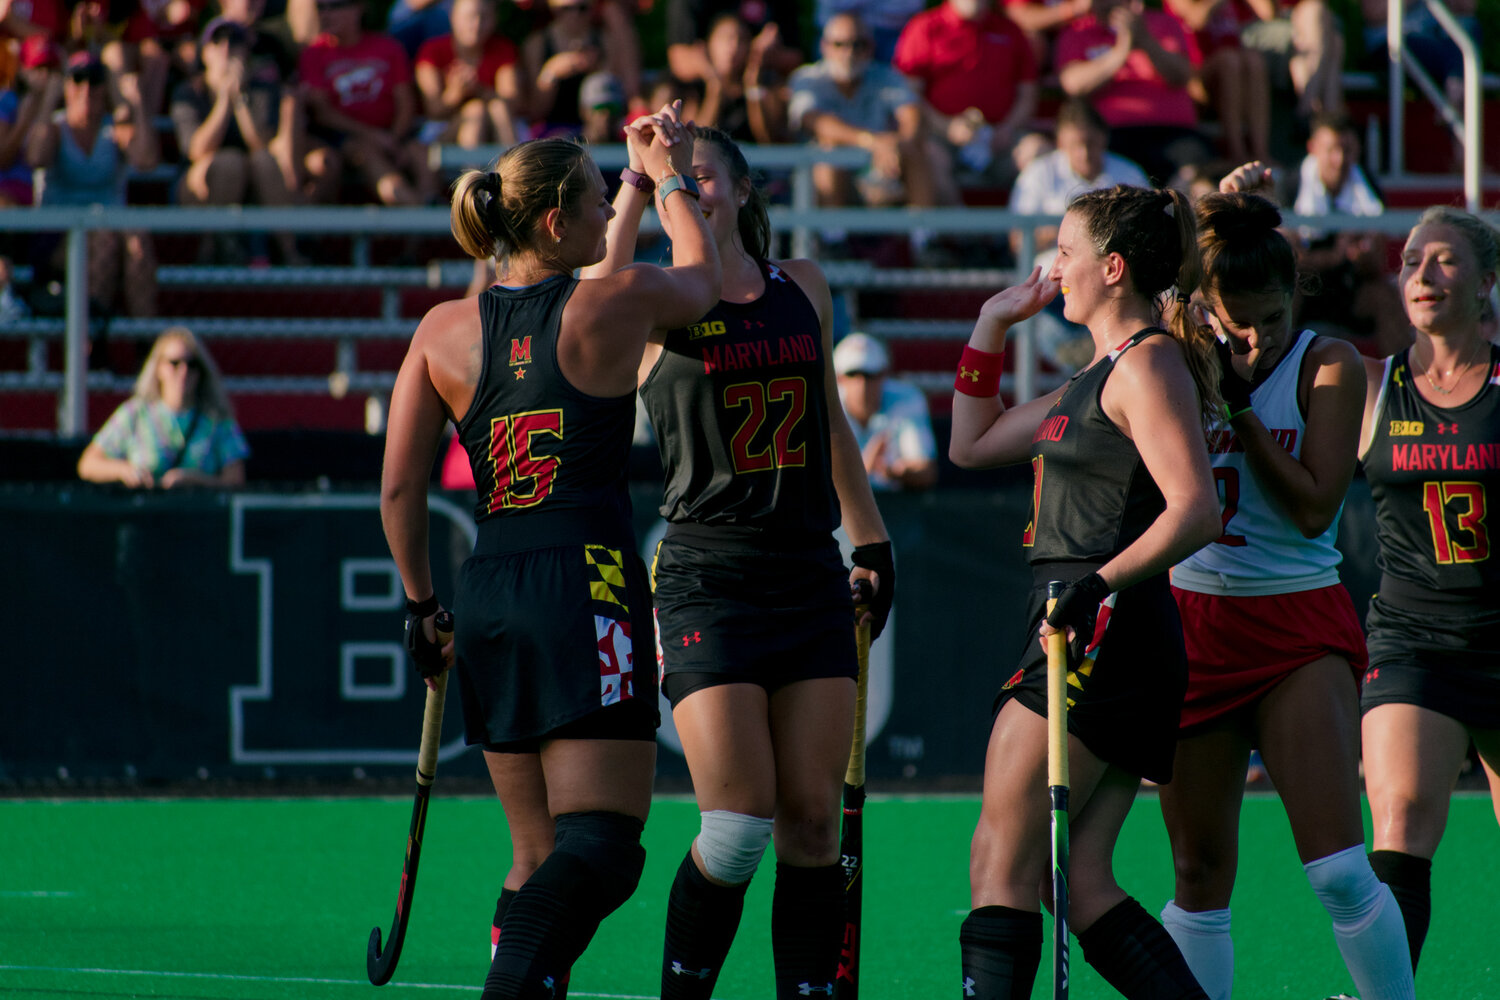 Defenders Bodil Keus and Riley Donnelly are shown celebrating after a goal against the Richmond Spiders (Gabby Baniqued/The Diamondback)